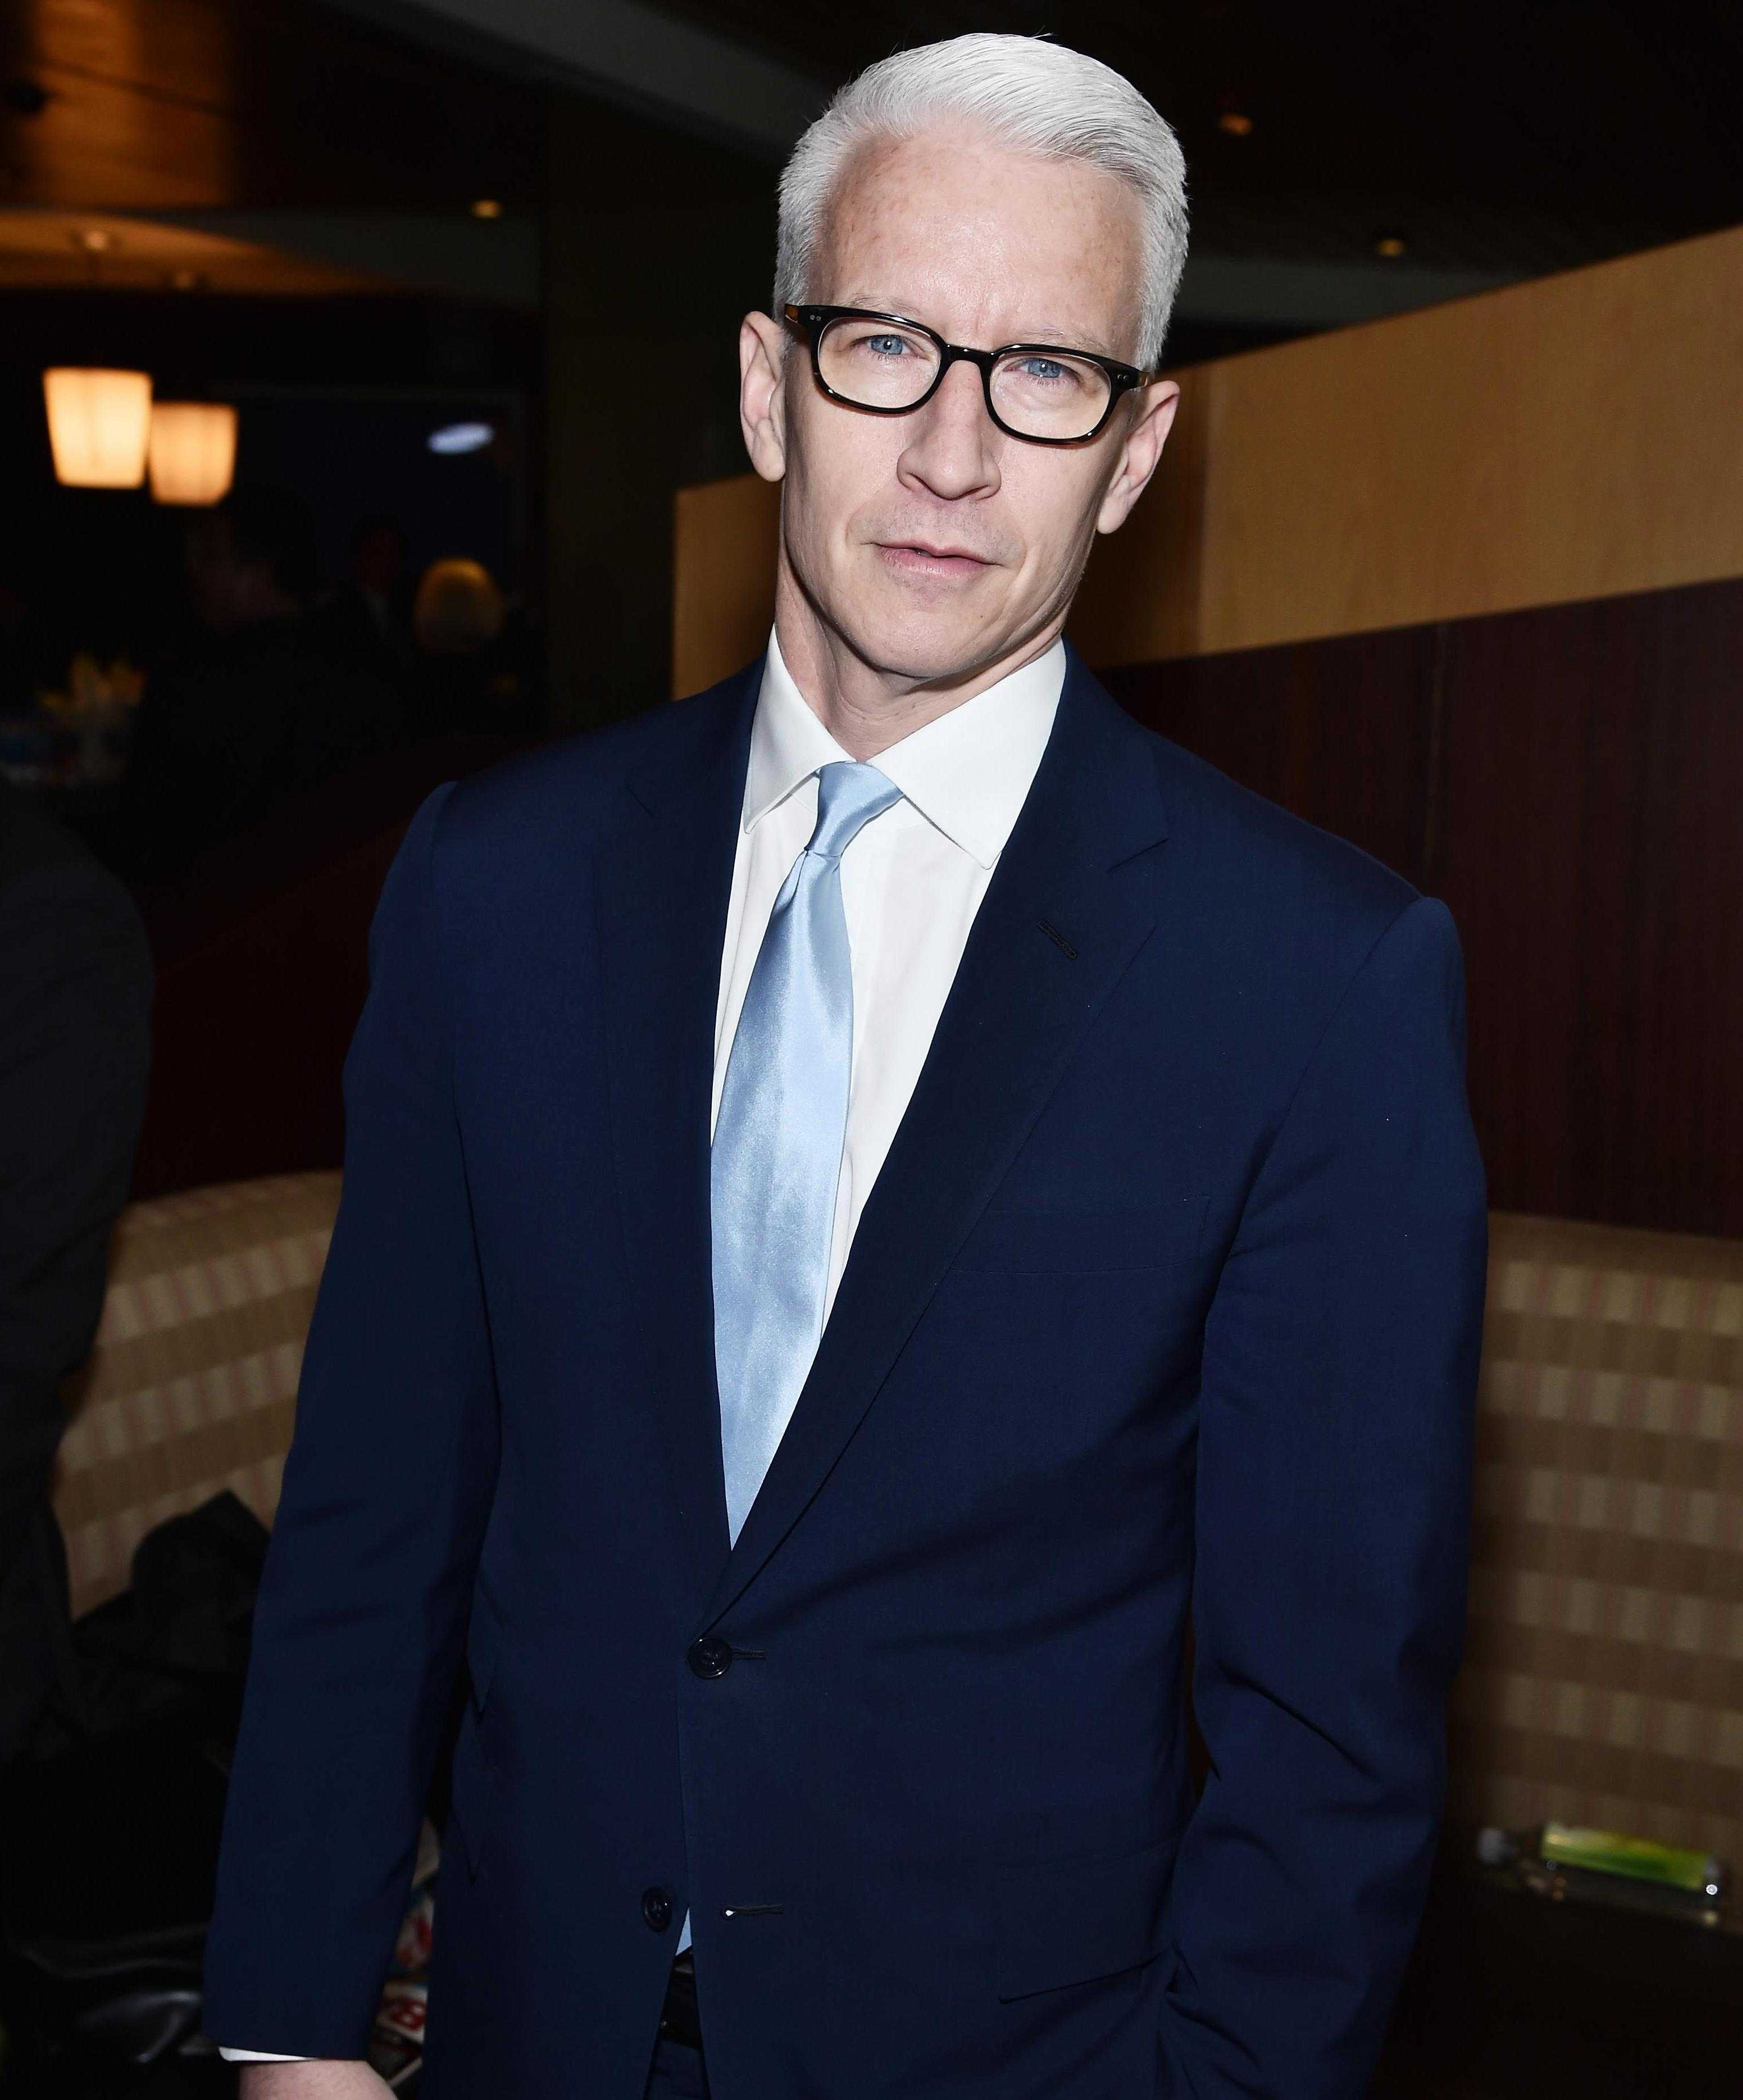 Anderson Cooper Career